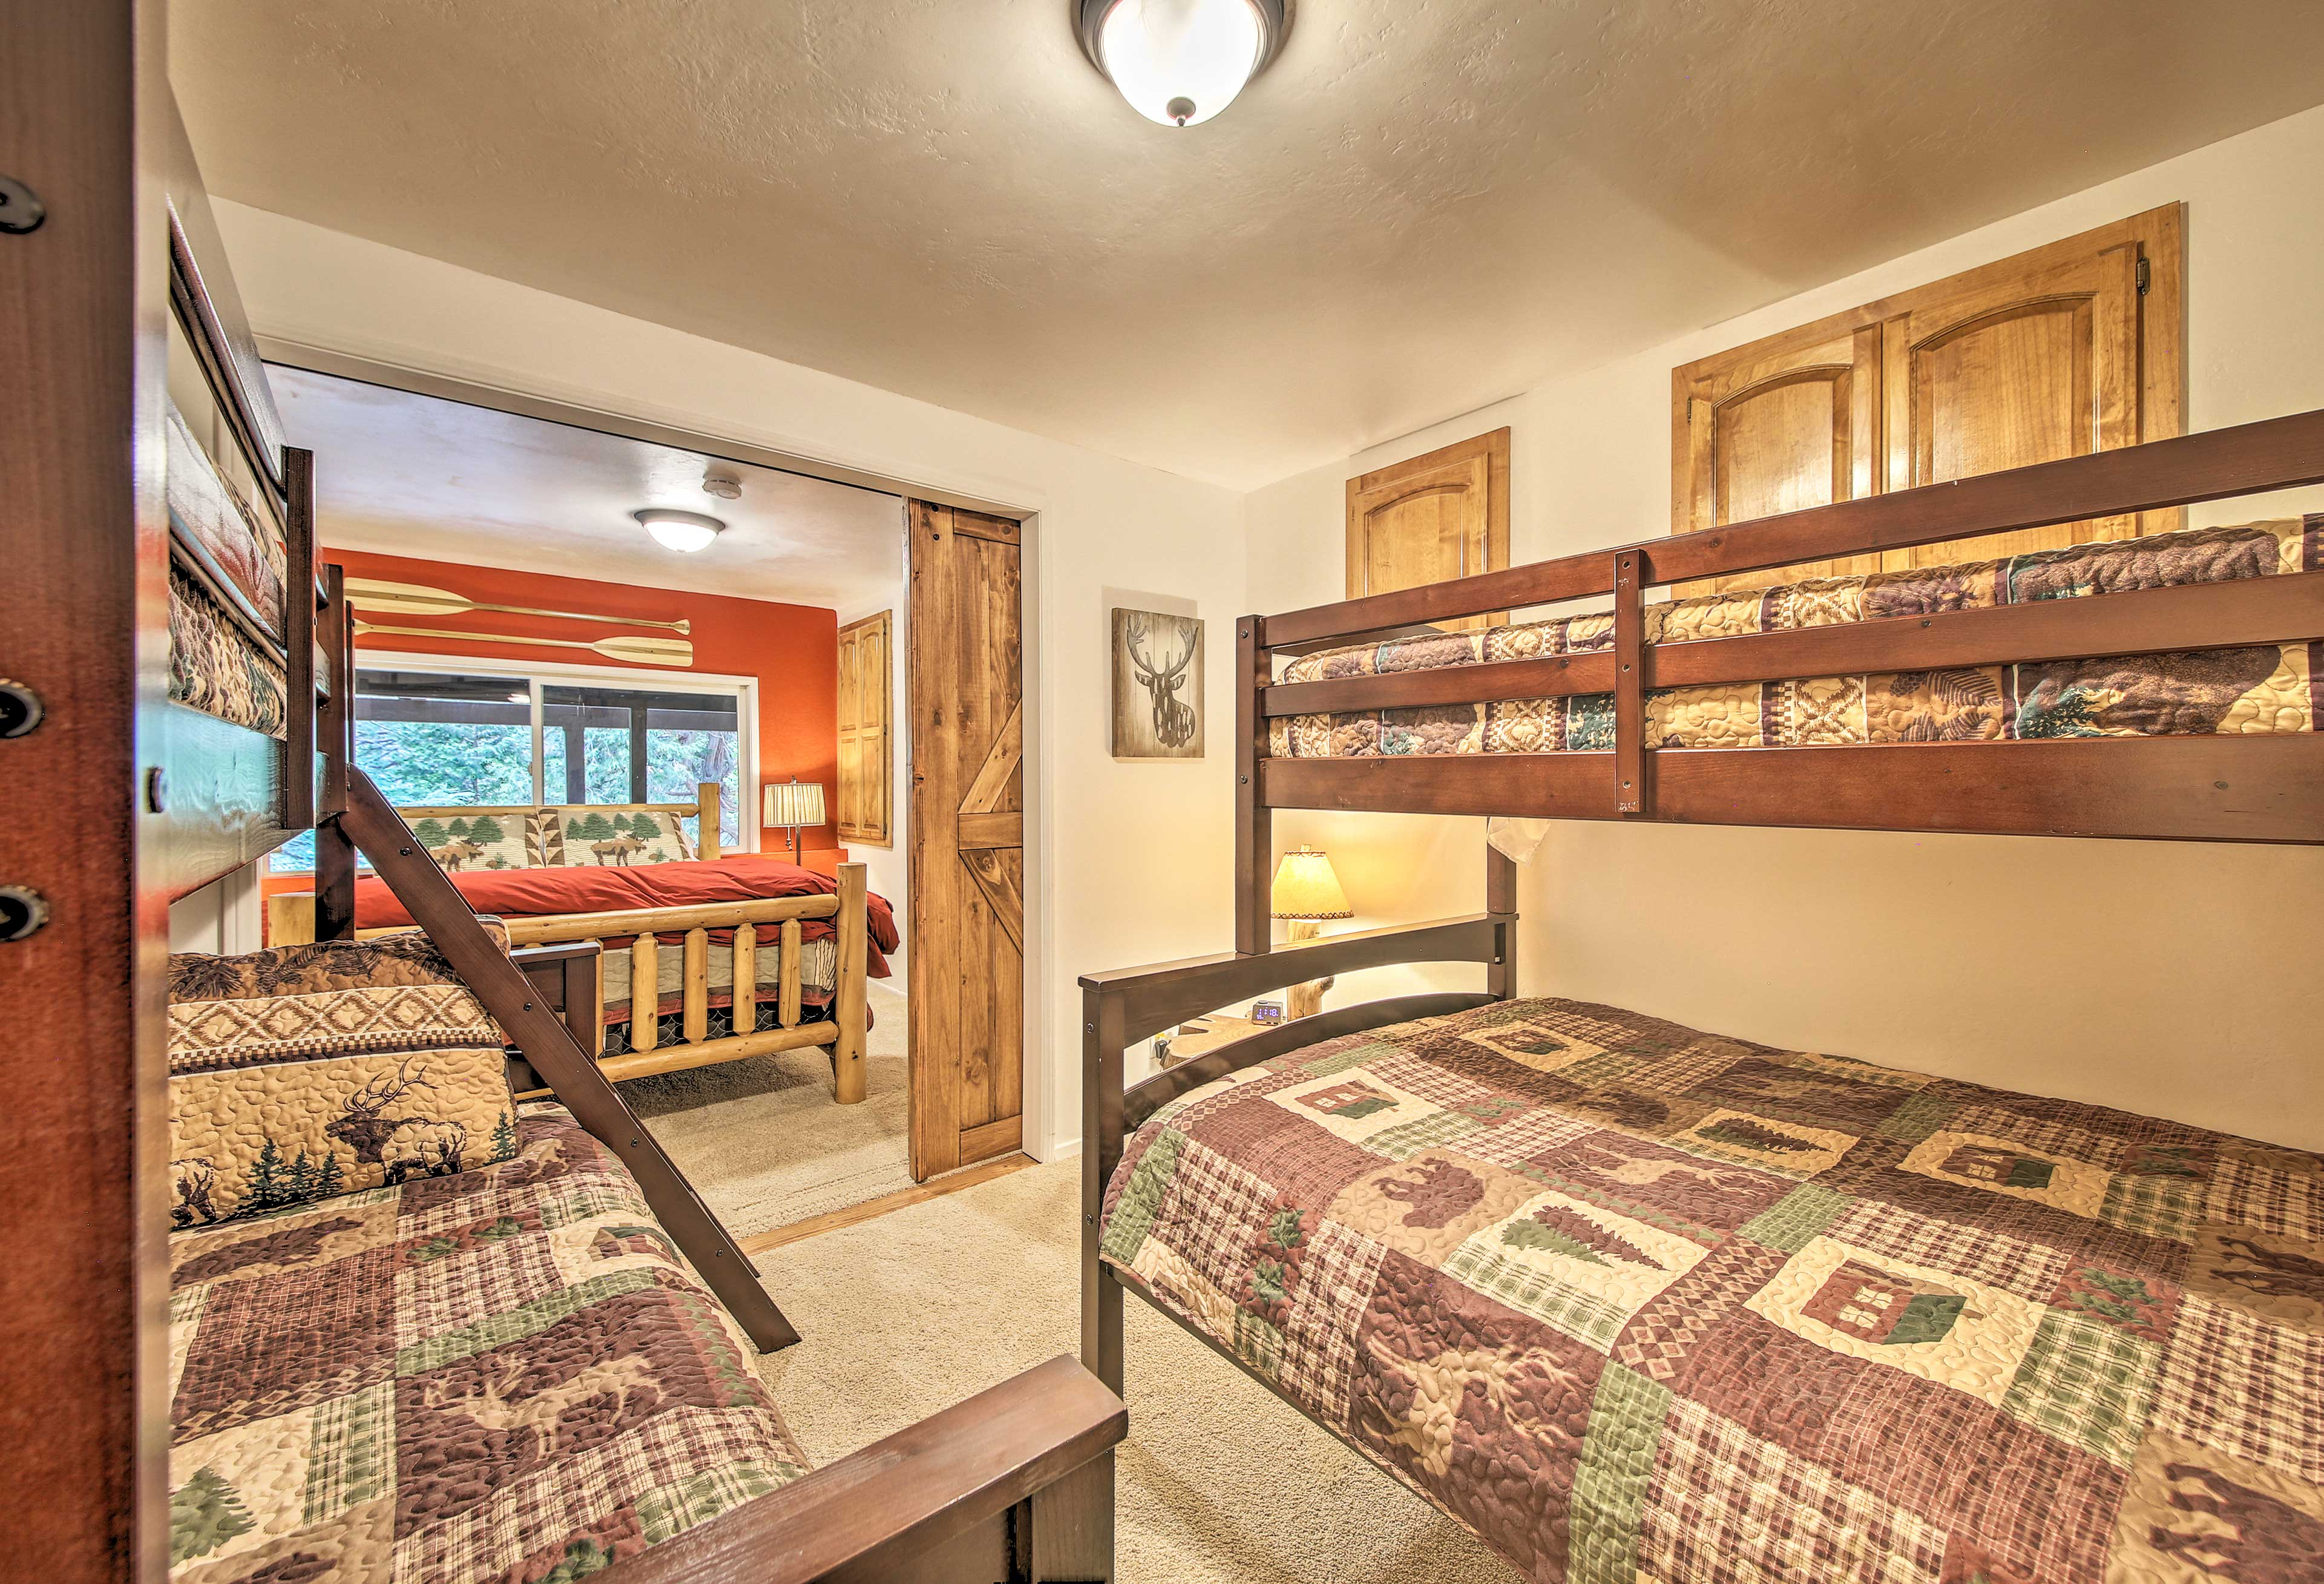 Open or close the doors to customize your stay!